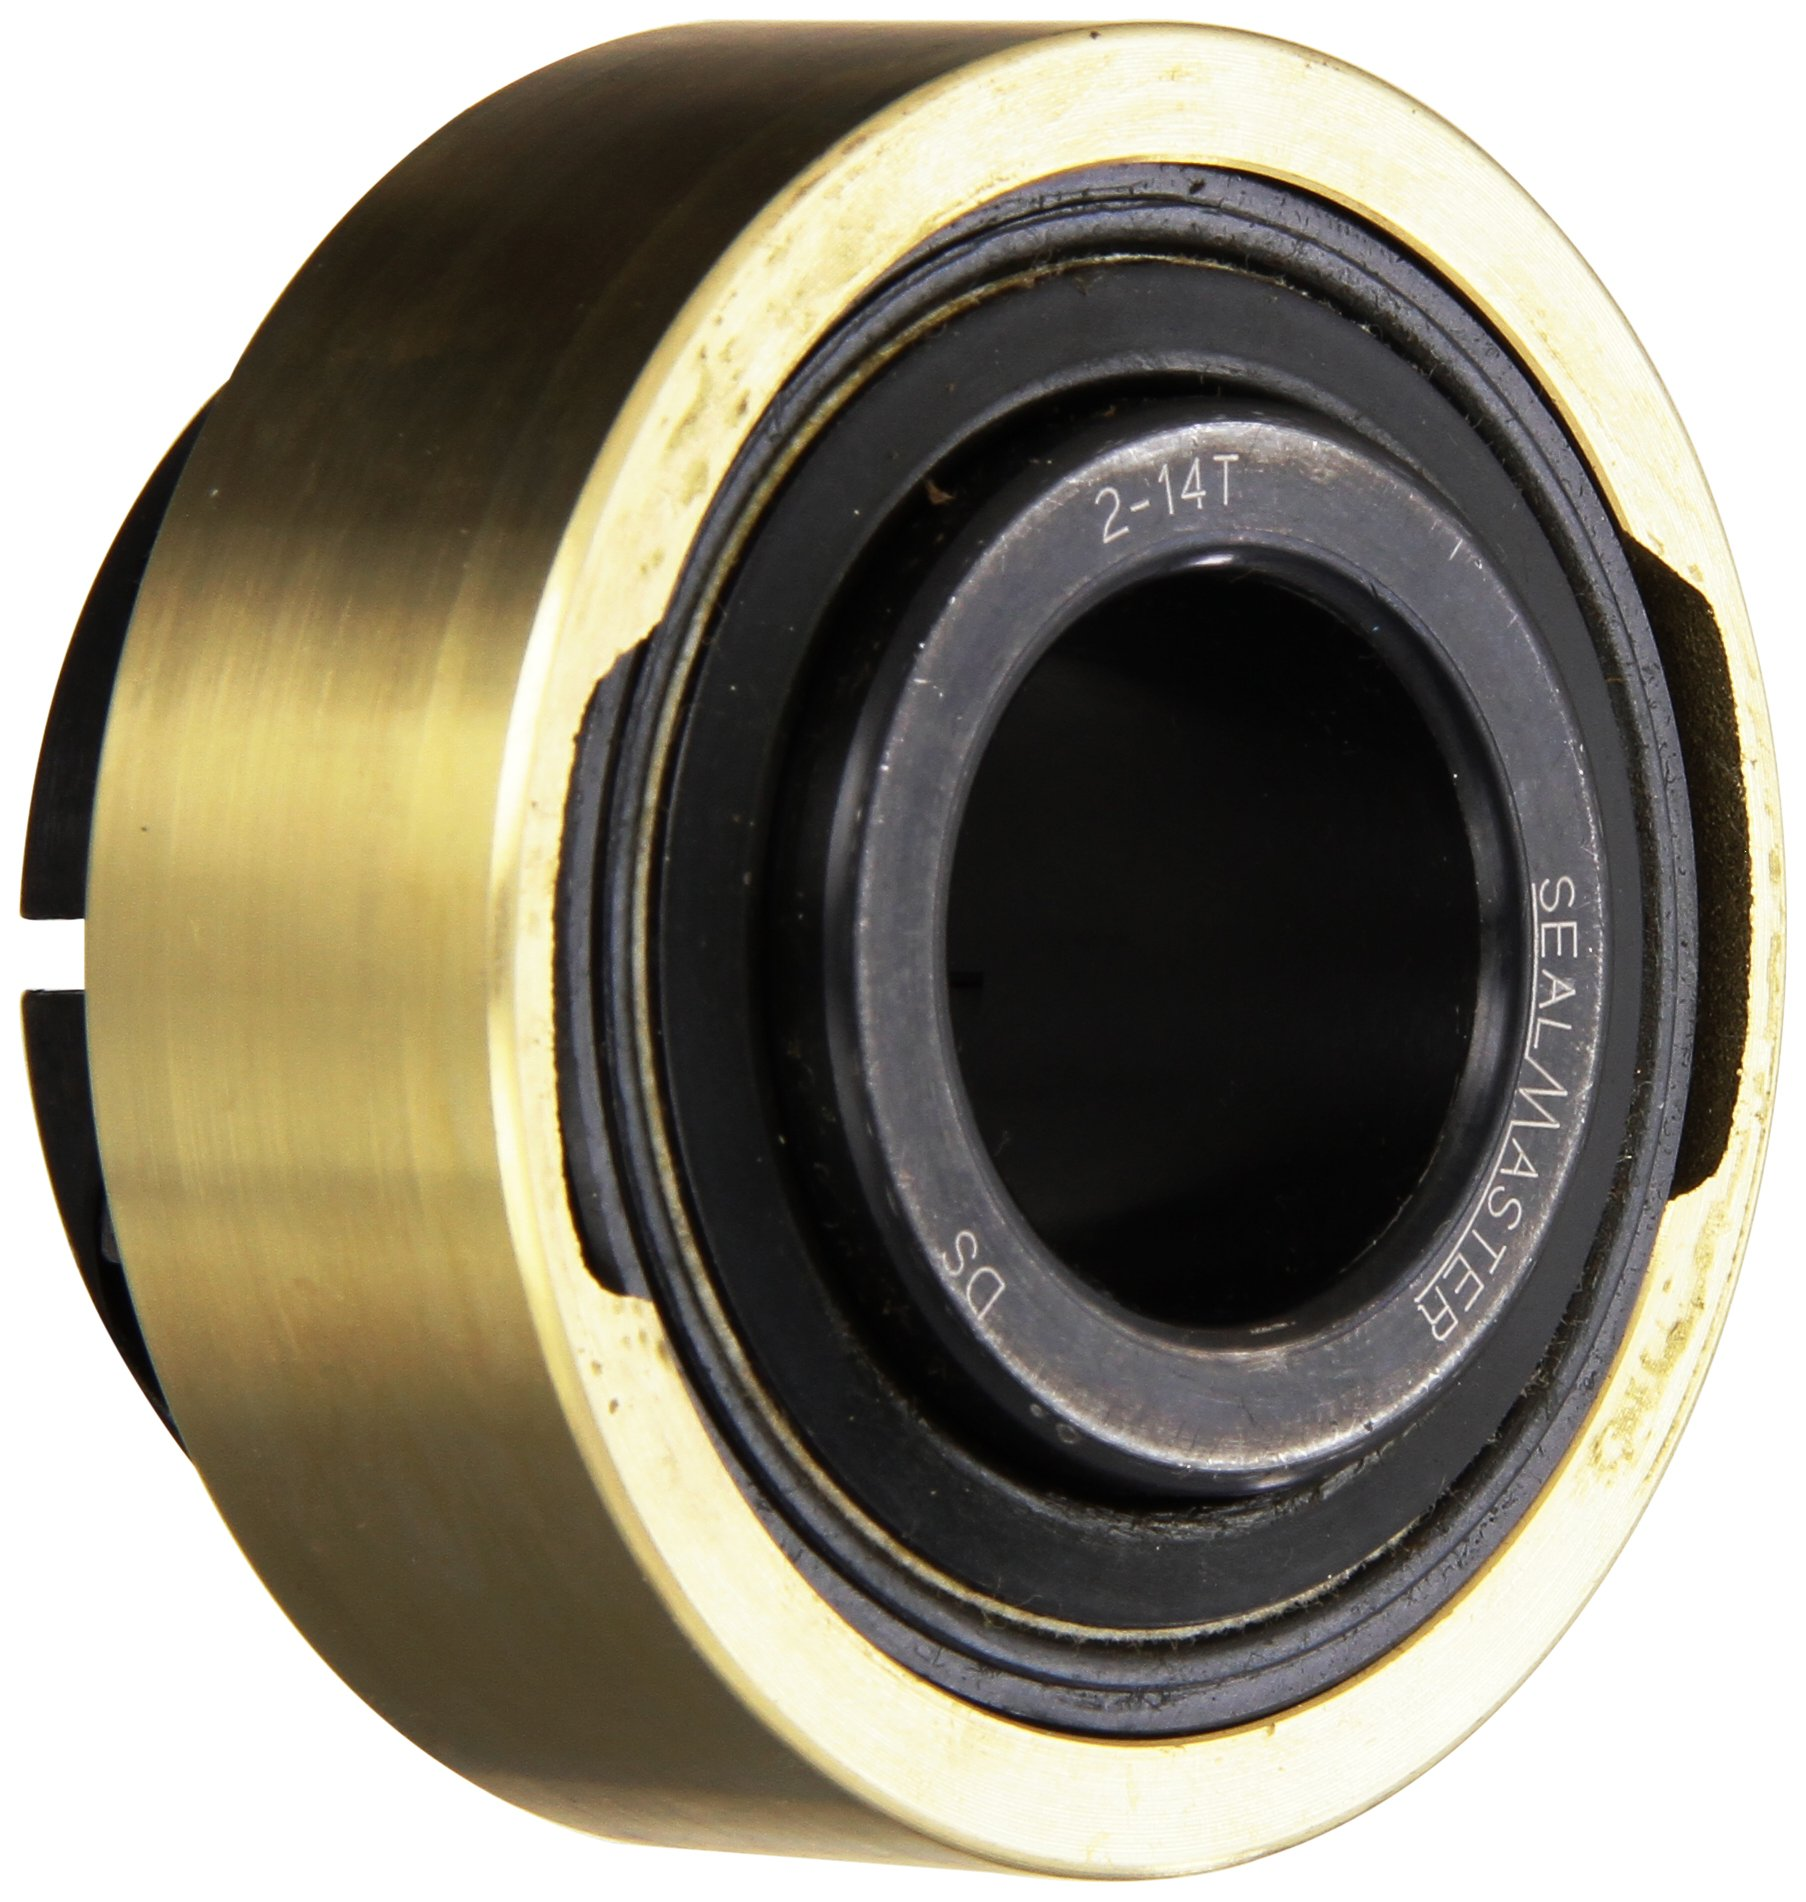 """Sealmaster AR-2-14T Standard Duty Mounted Bearing Expansion Insert, Skwezloc Collar, Felt Seals, 1-1/4"""" Bore, 3.140"""" OD, 1-3/4"""" Overall Width, 1-1/64"""" Outer Ring Width"""